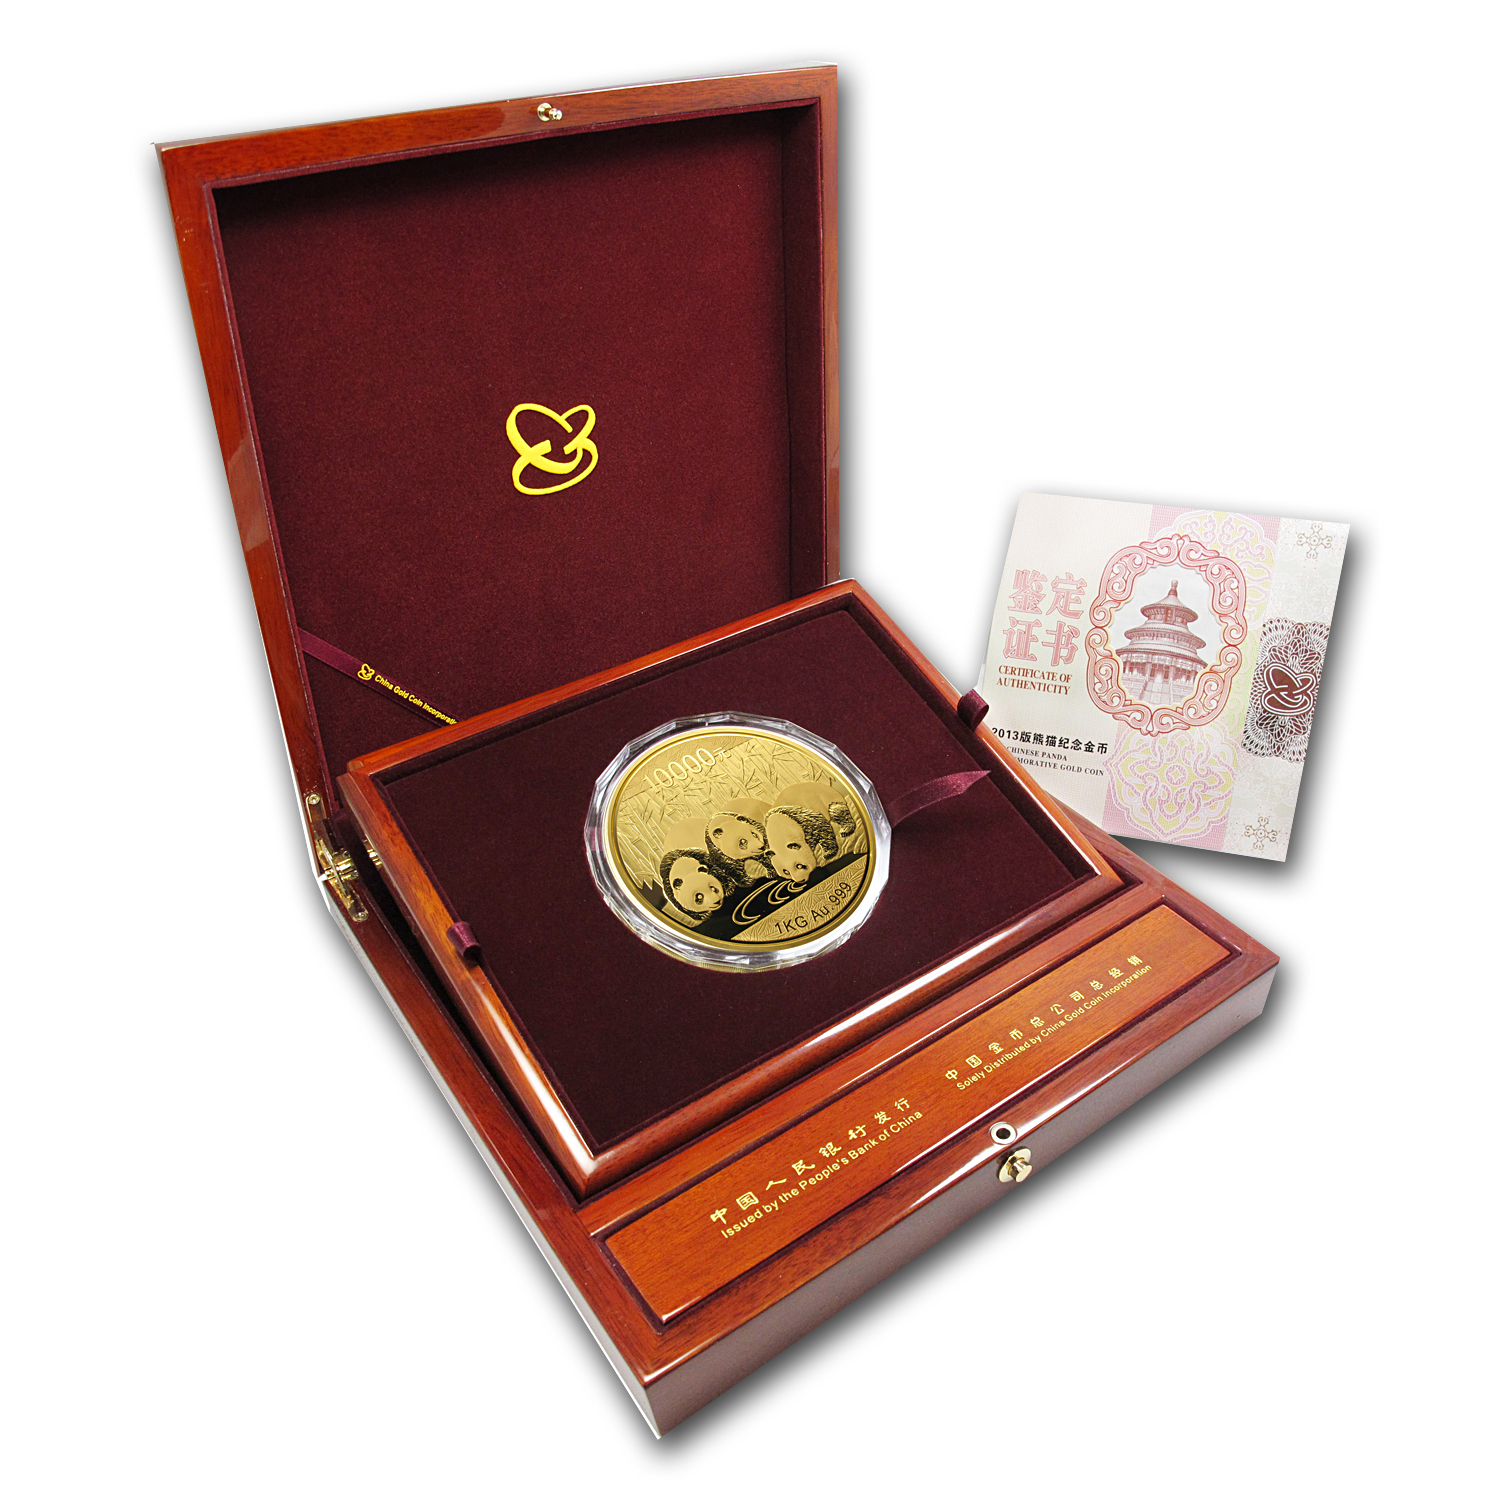 2013 1 Kilo Proof Gold Chinese Panda (W/Box & Coa)